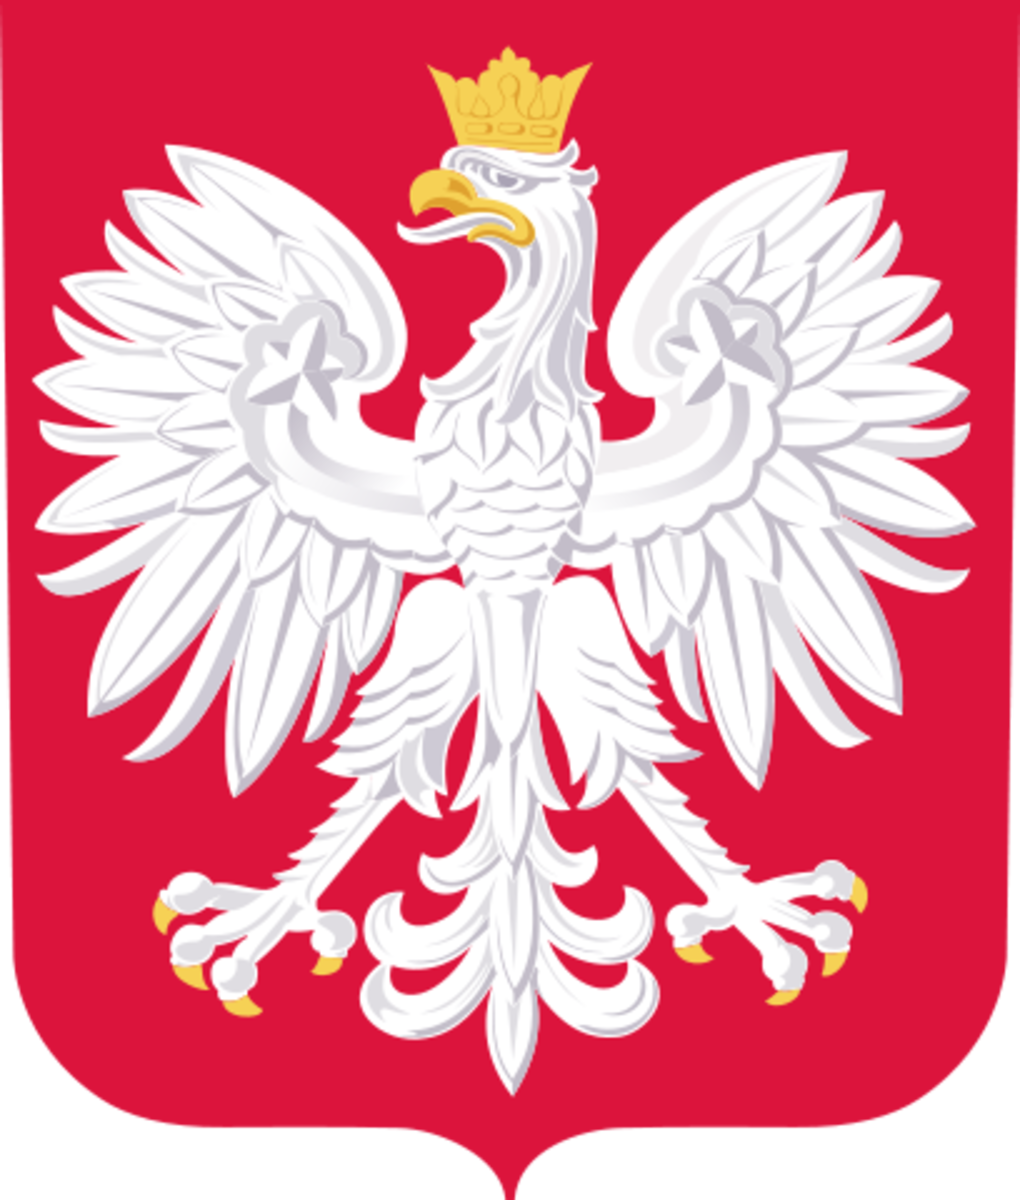 The Polish Coat of Arms